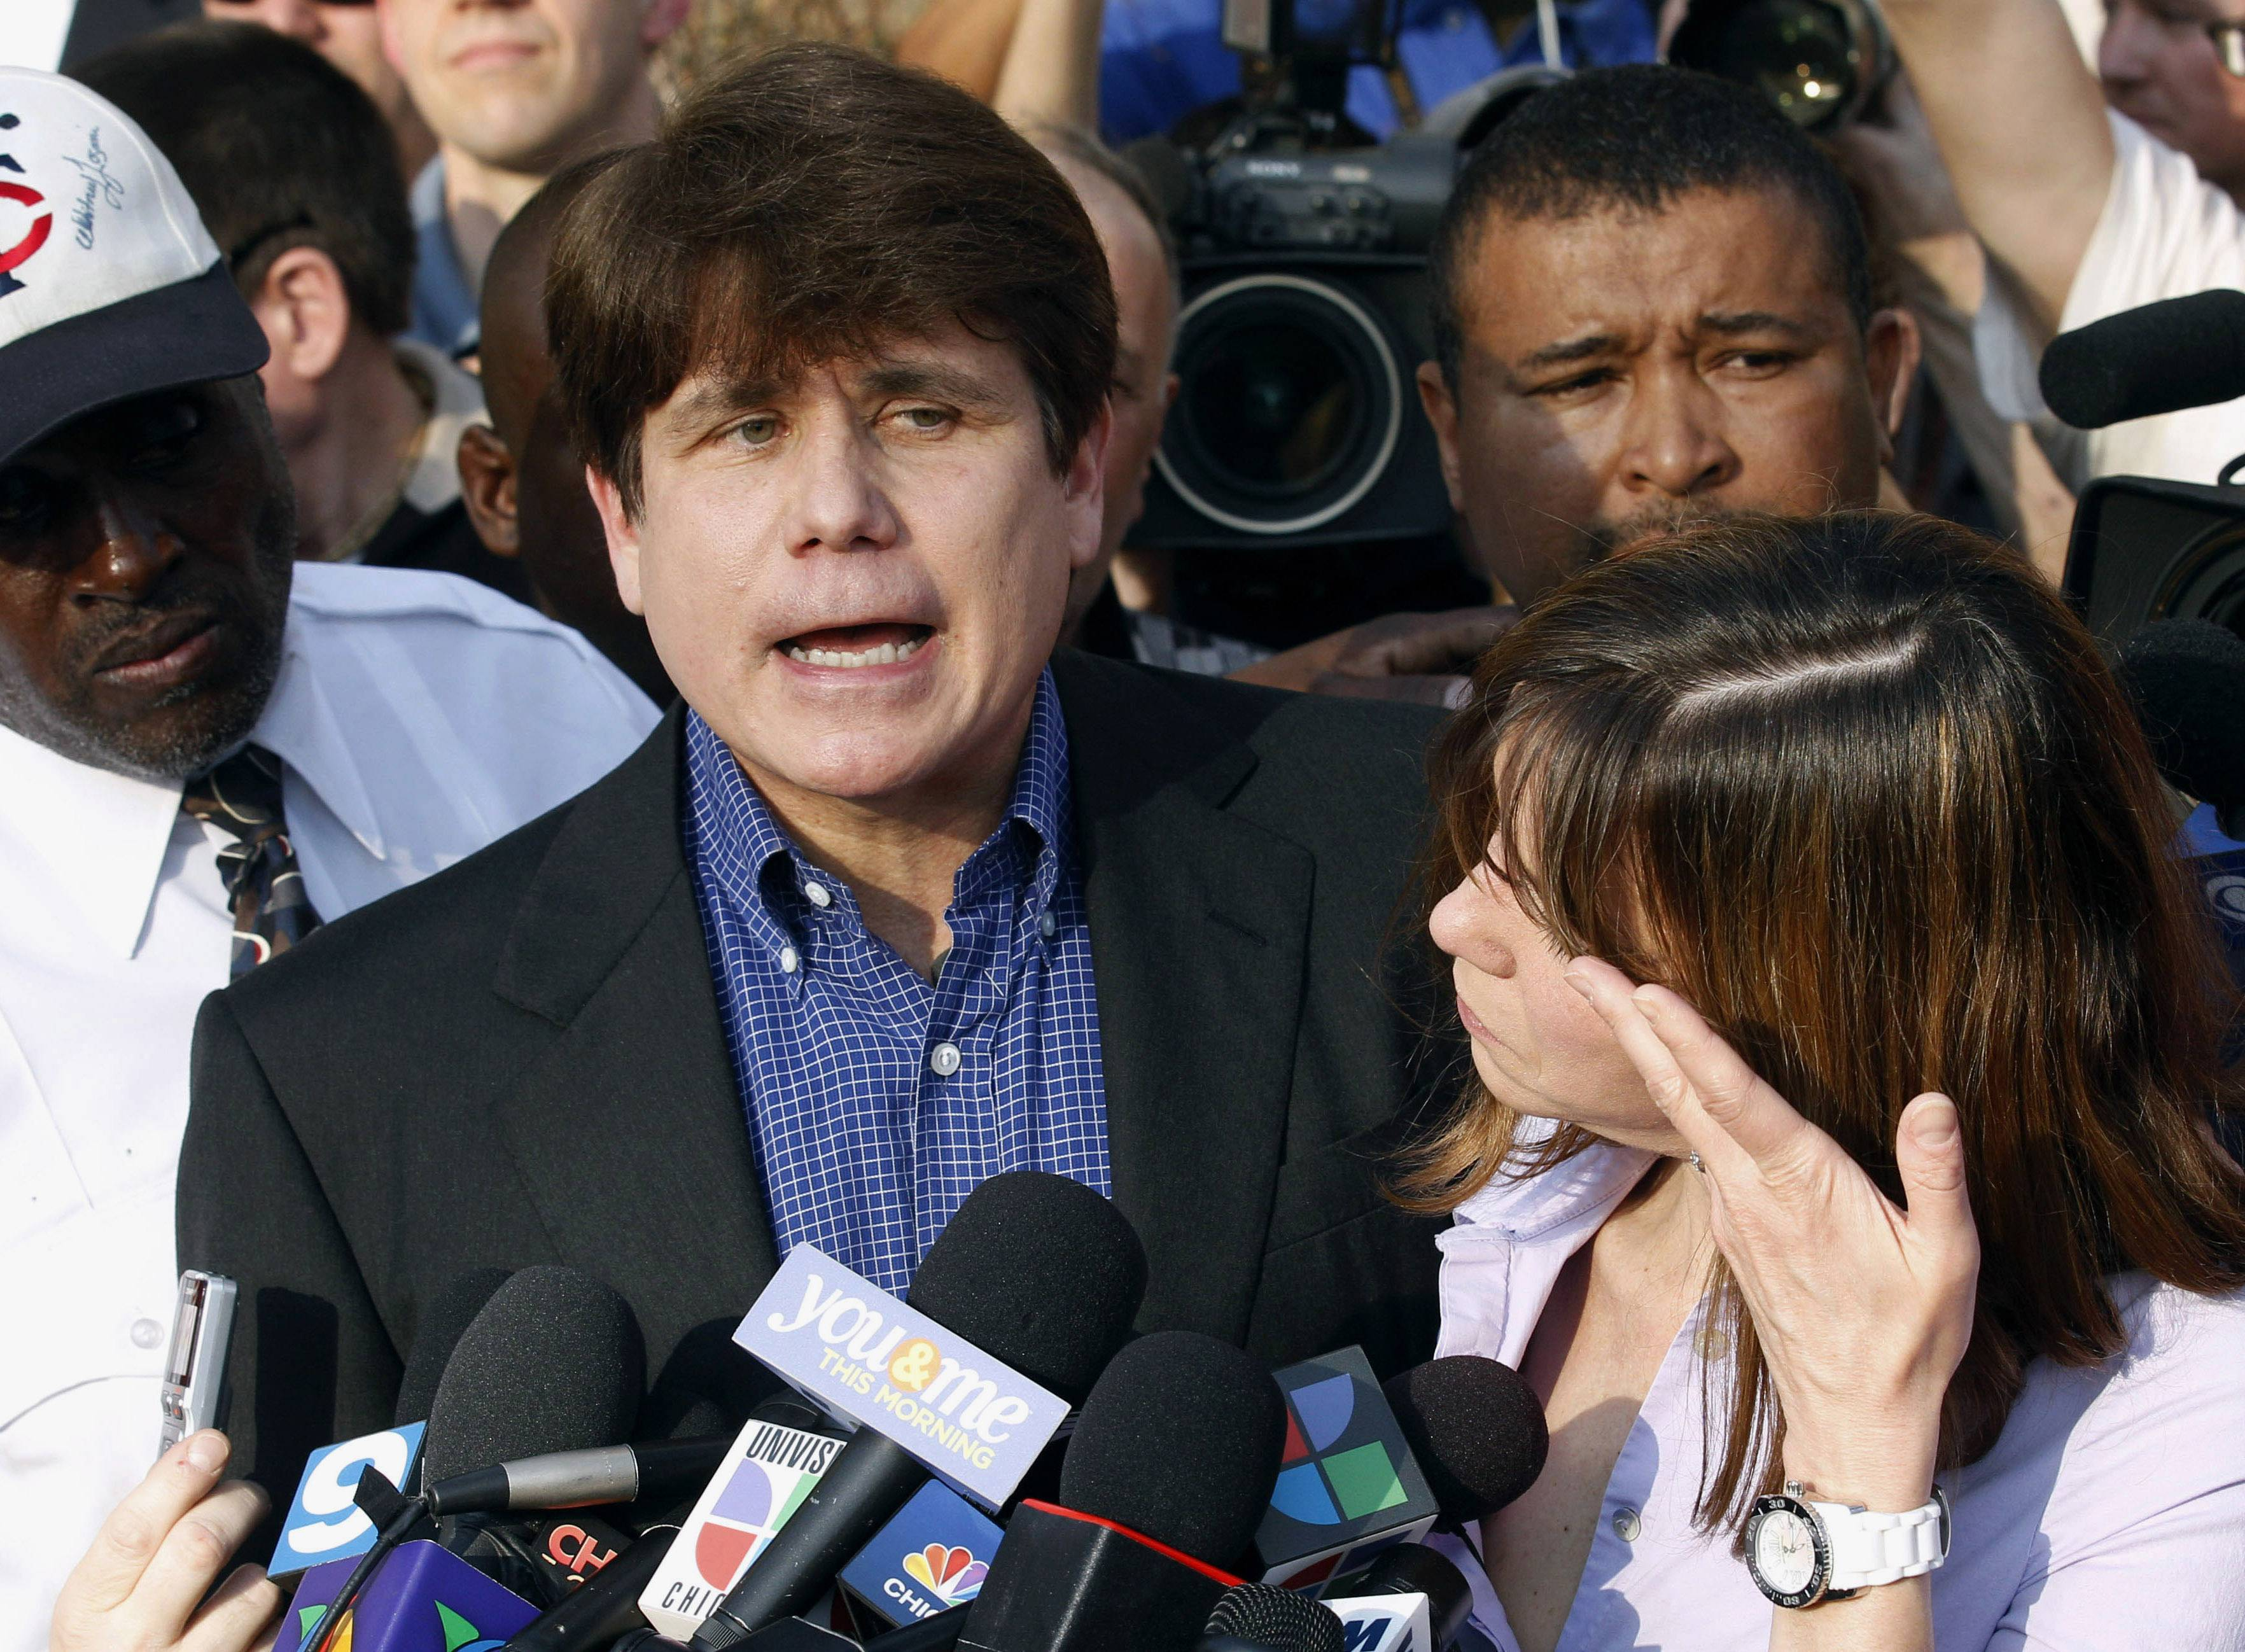 "Federal prosecutors said statements former Illinois Gov. Rod Blagojevich has made prove he isn't ""deserving of leniency."" A resentencing hearing is scheduled next month for Blagojevich, who is hoping a federal judge will give him a five-year sentence instead of his original 14 years."